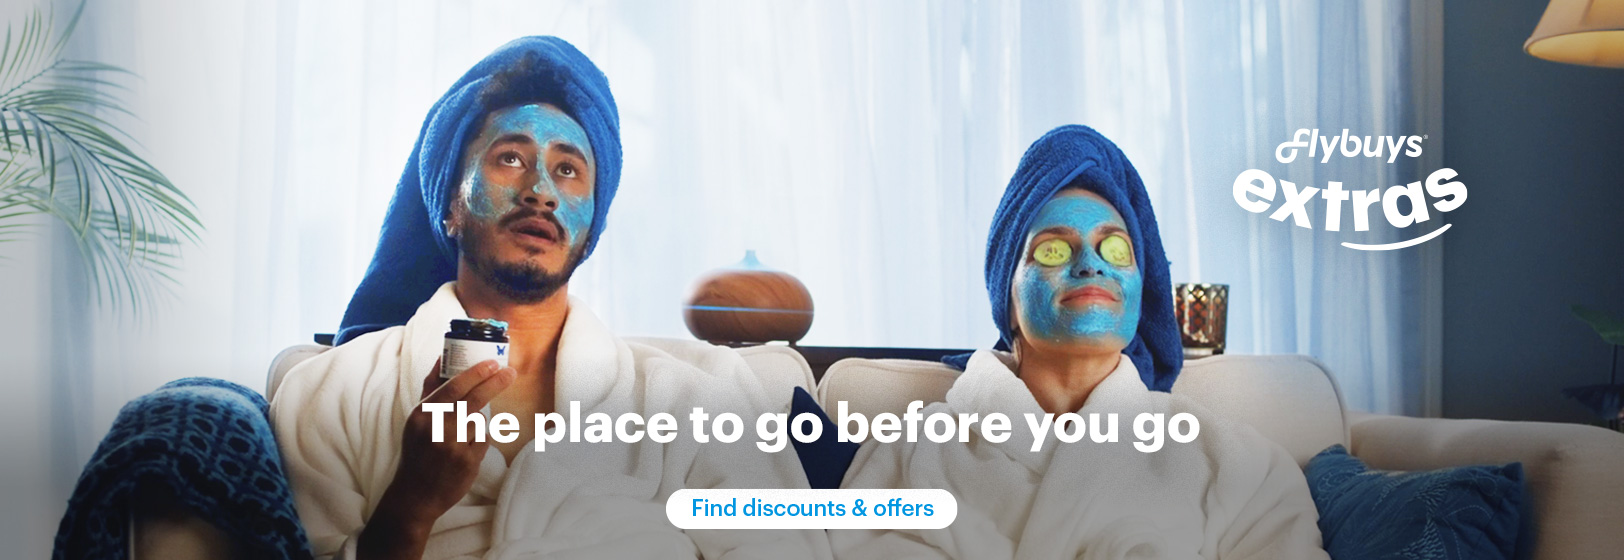 Find offers and discounts that'll make your day a little happier.